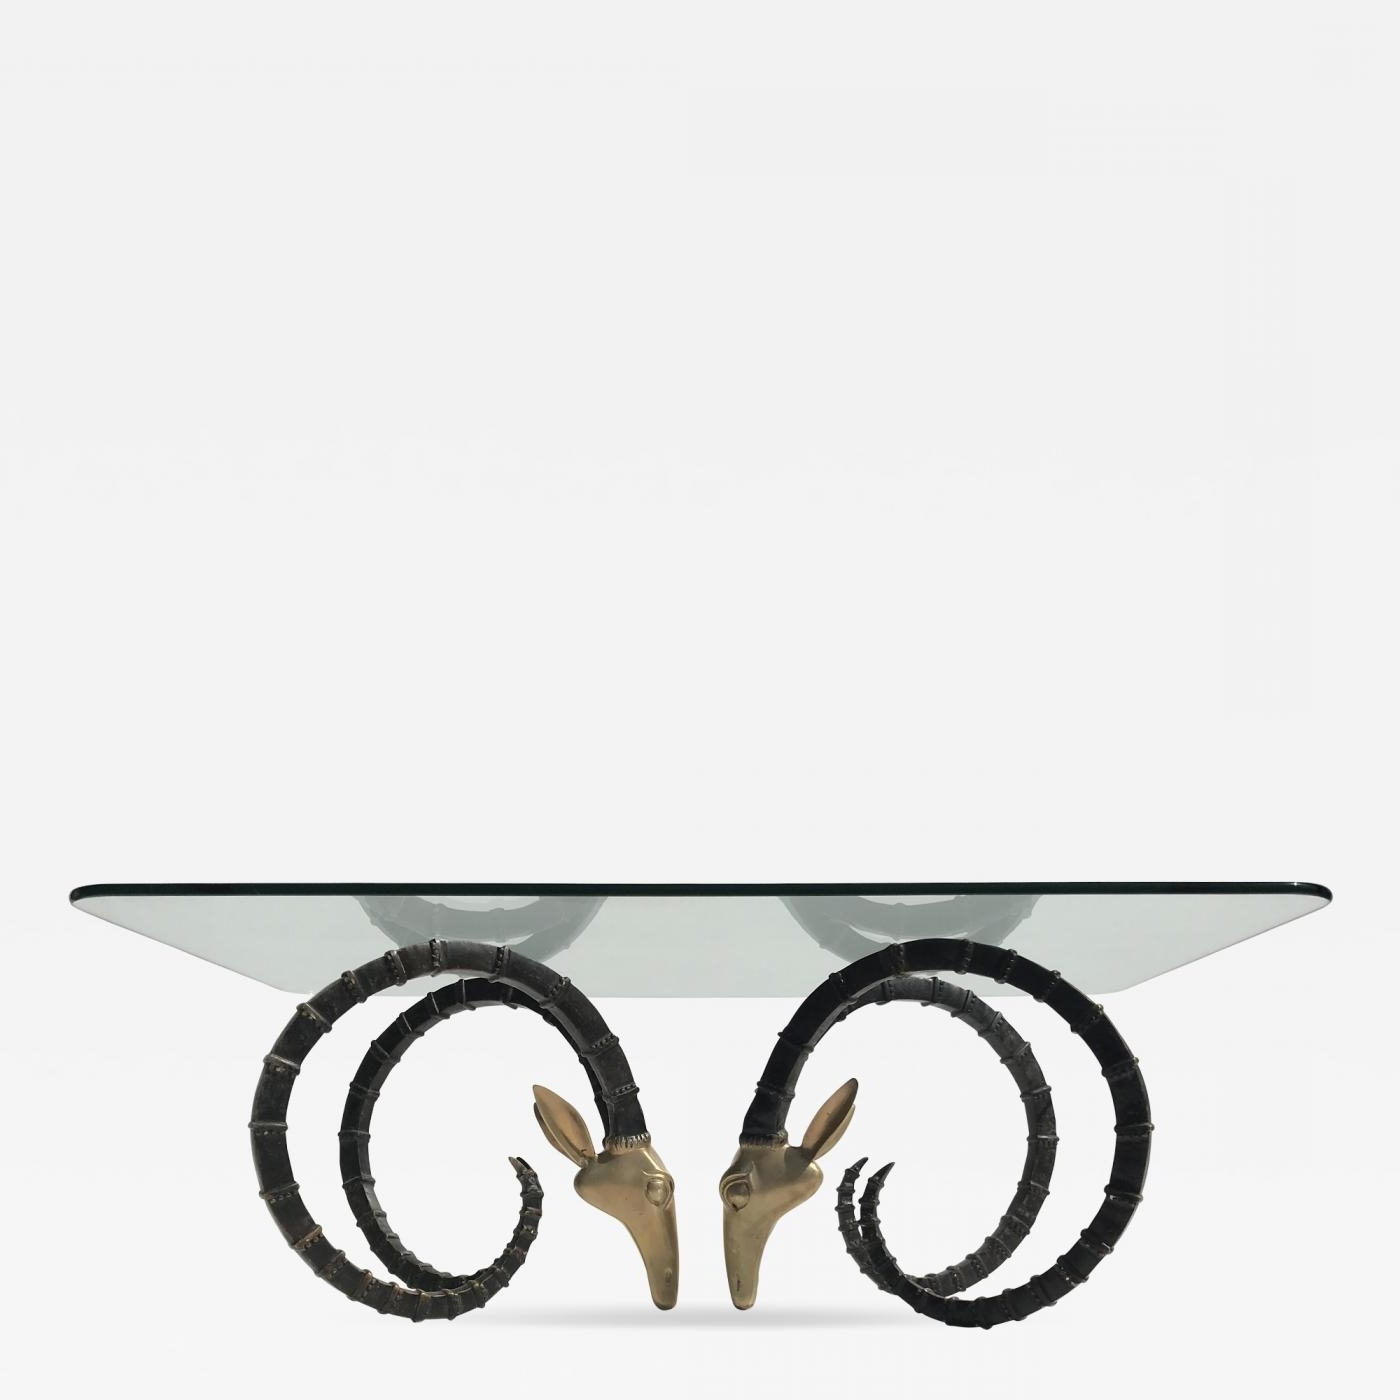 Alain Chervet – Brass Ibex Or Ram Head Coffee Table Regarding 2018 Cacti Brass Coffee Tables (View 1 of 20)